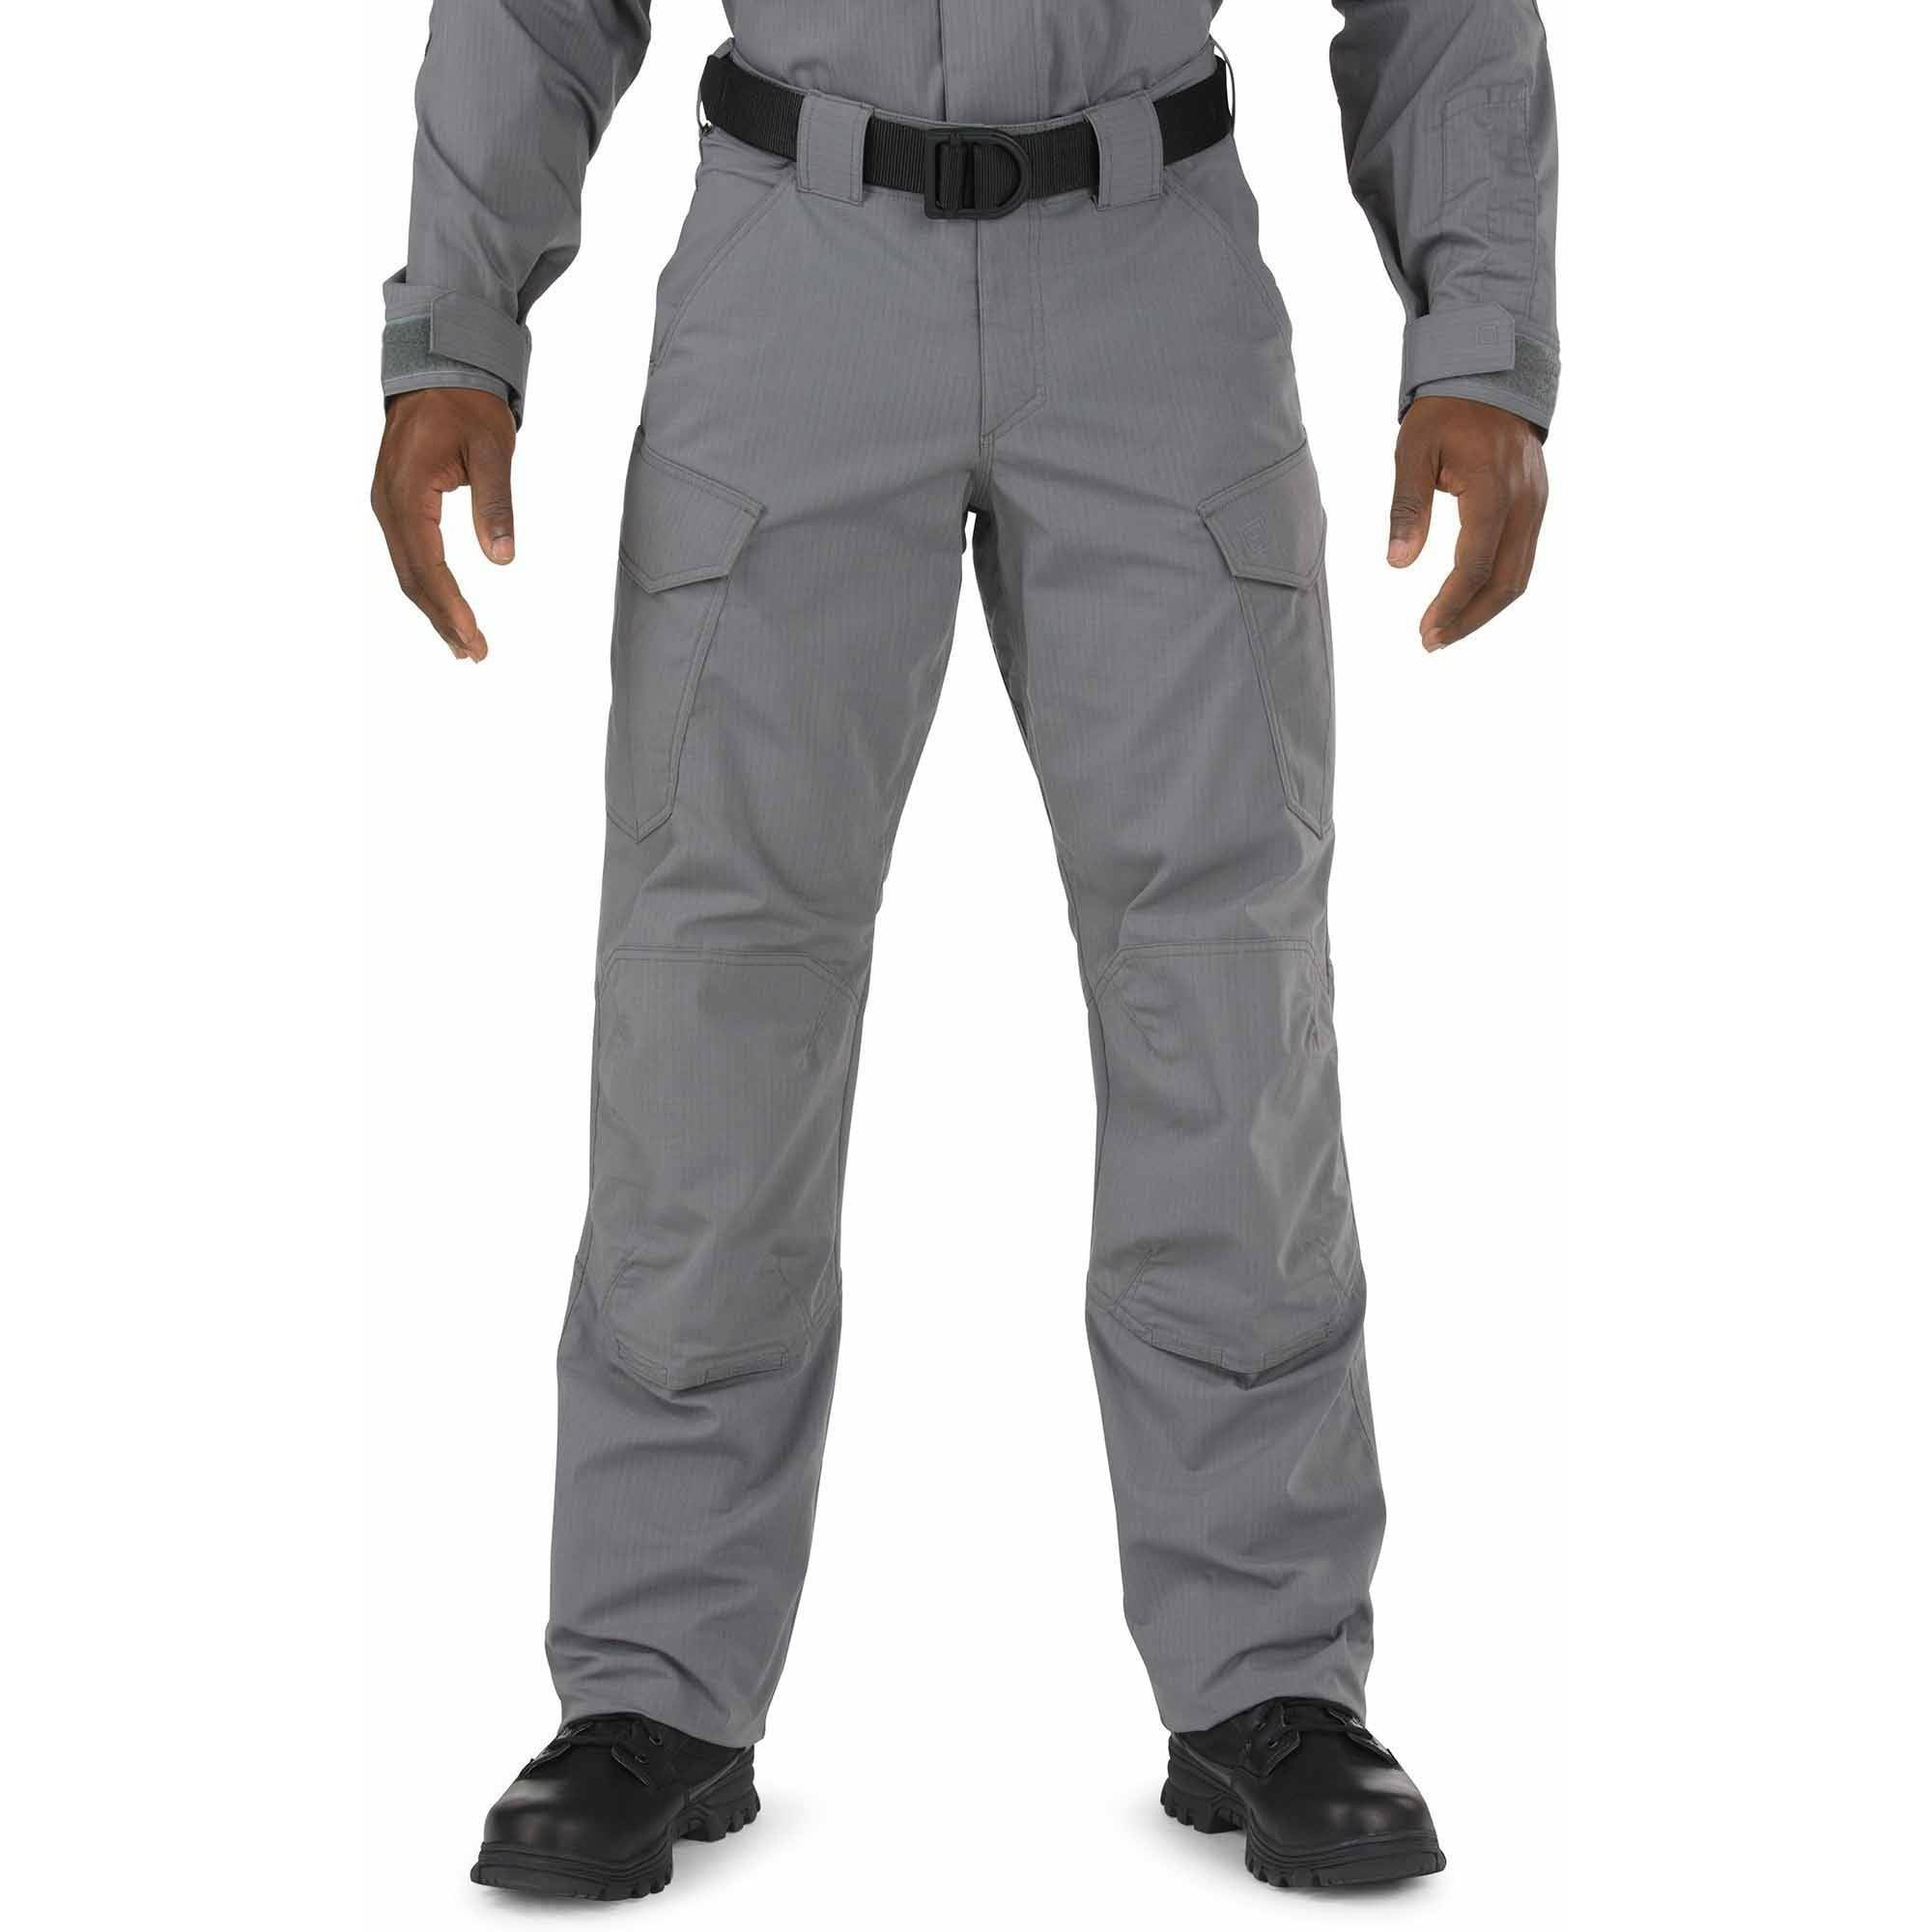 Men's Stryke TDU Pant, Storm (34-28) by 5.11 Tactical